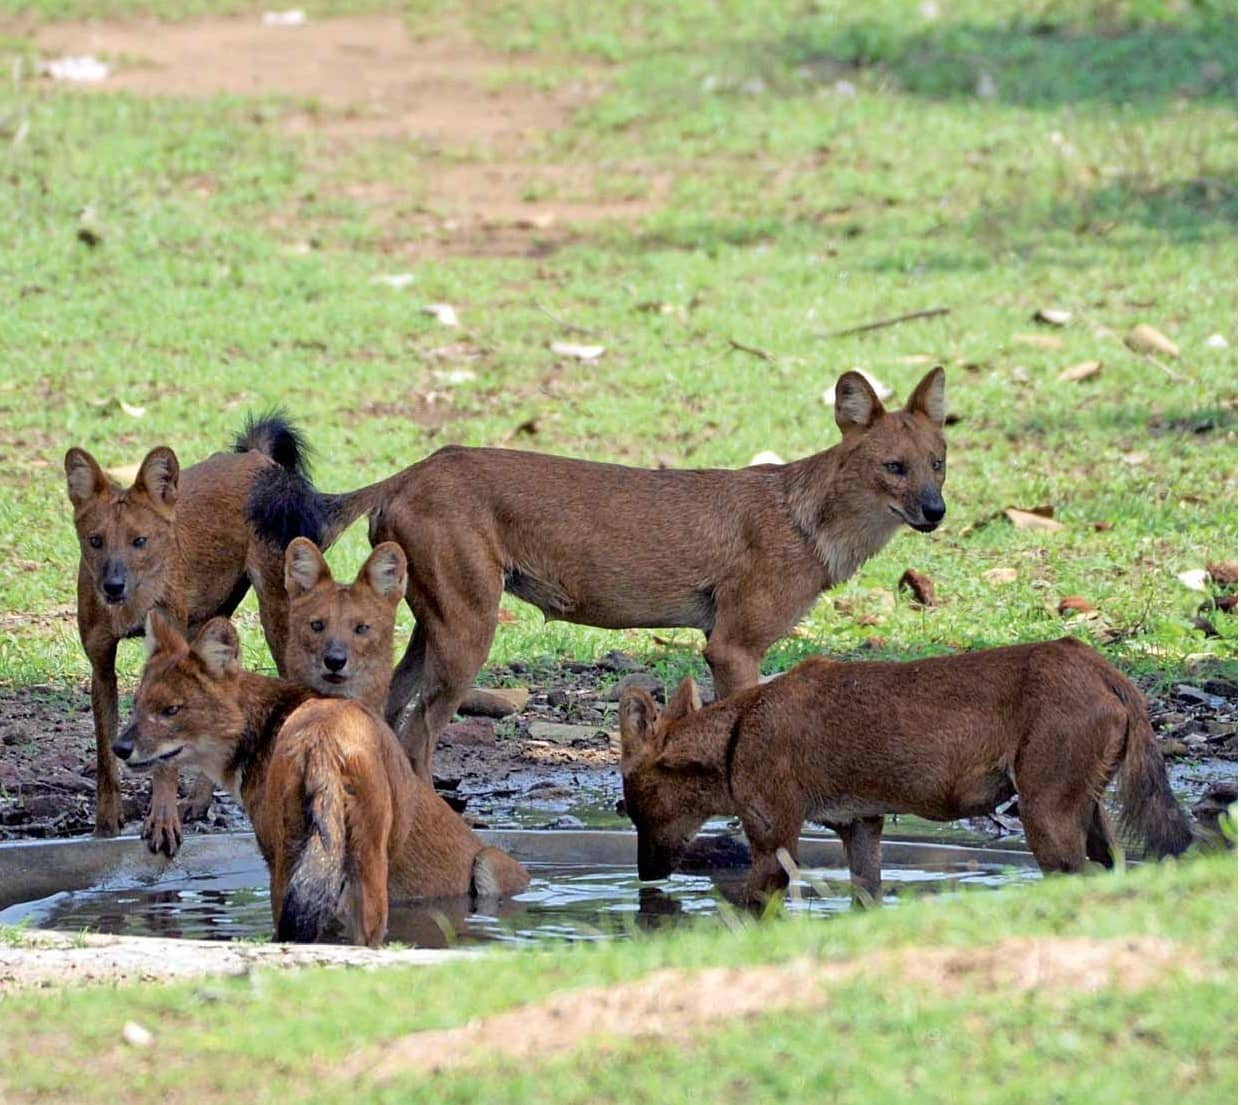 The Dhole: Up-close